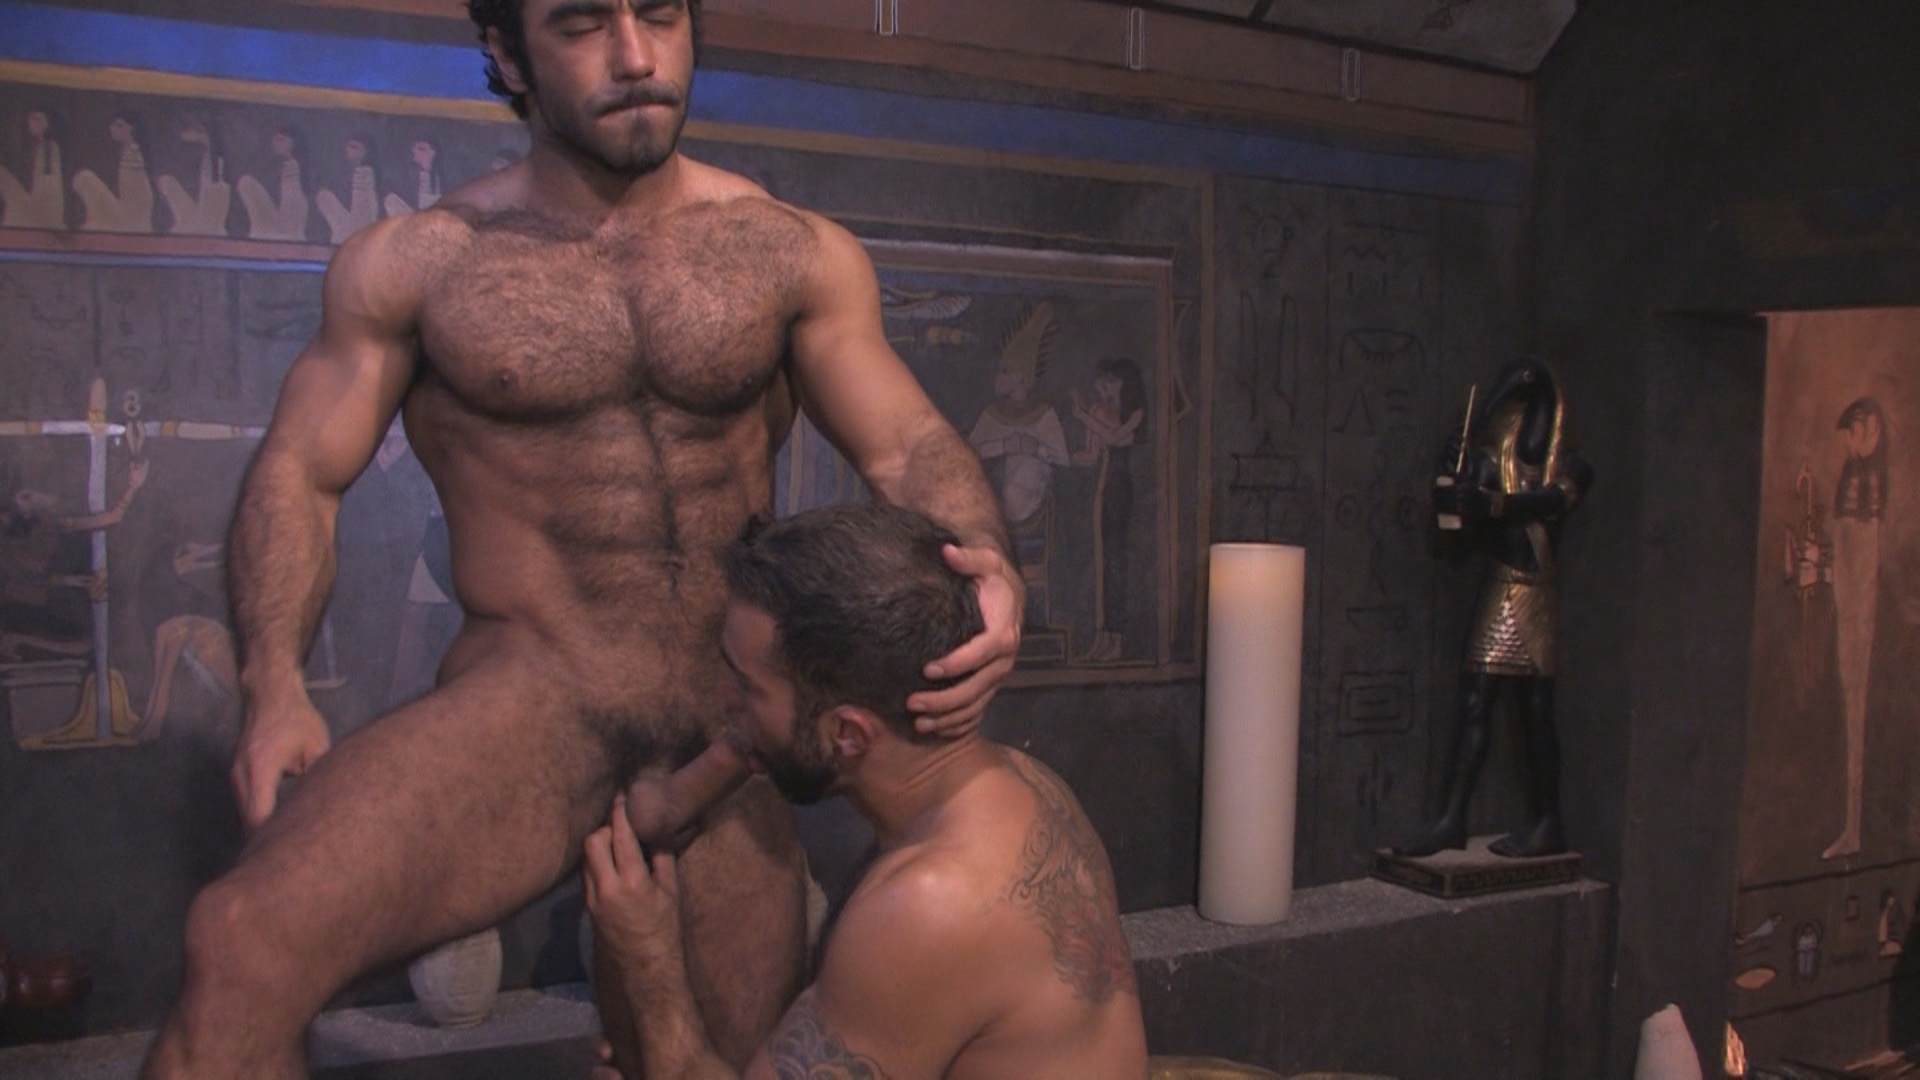 The Steve Cruz Anthology Xvideo gay